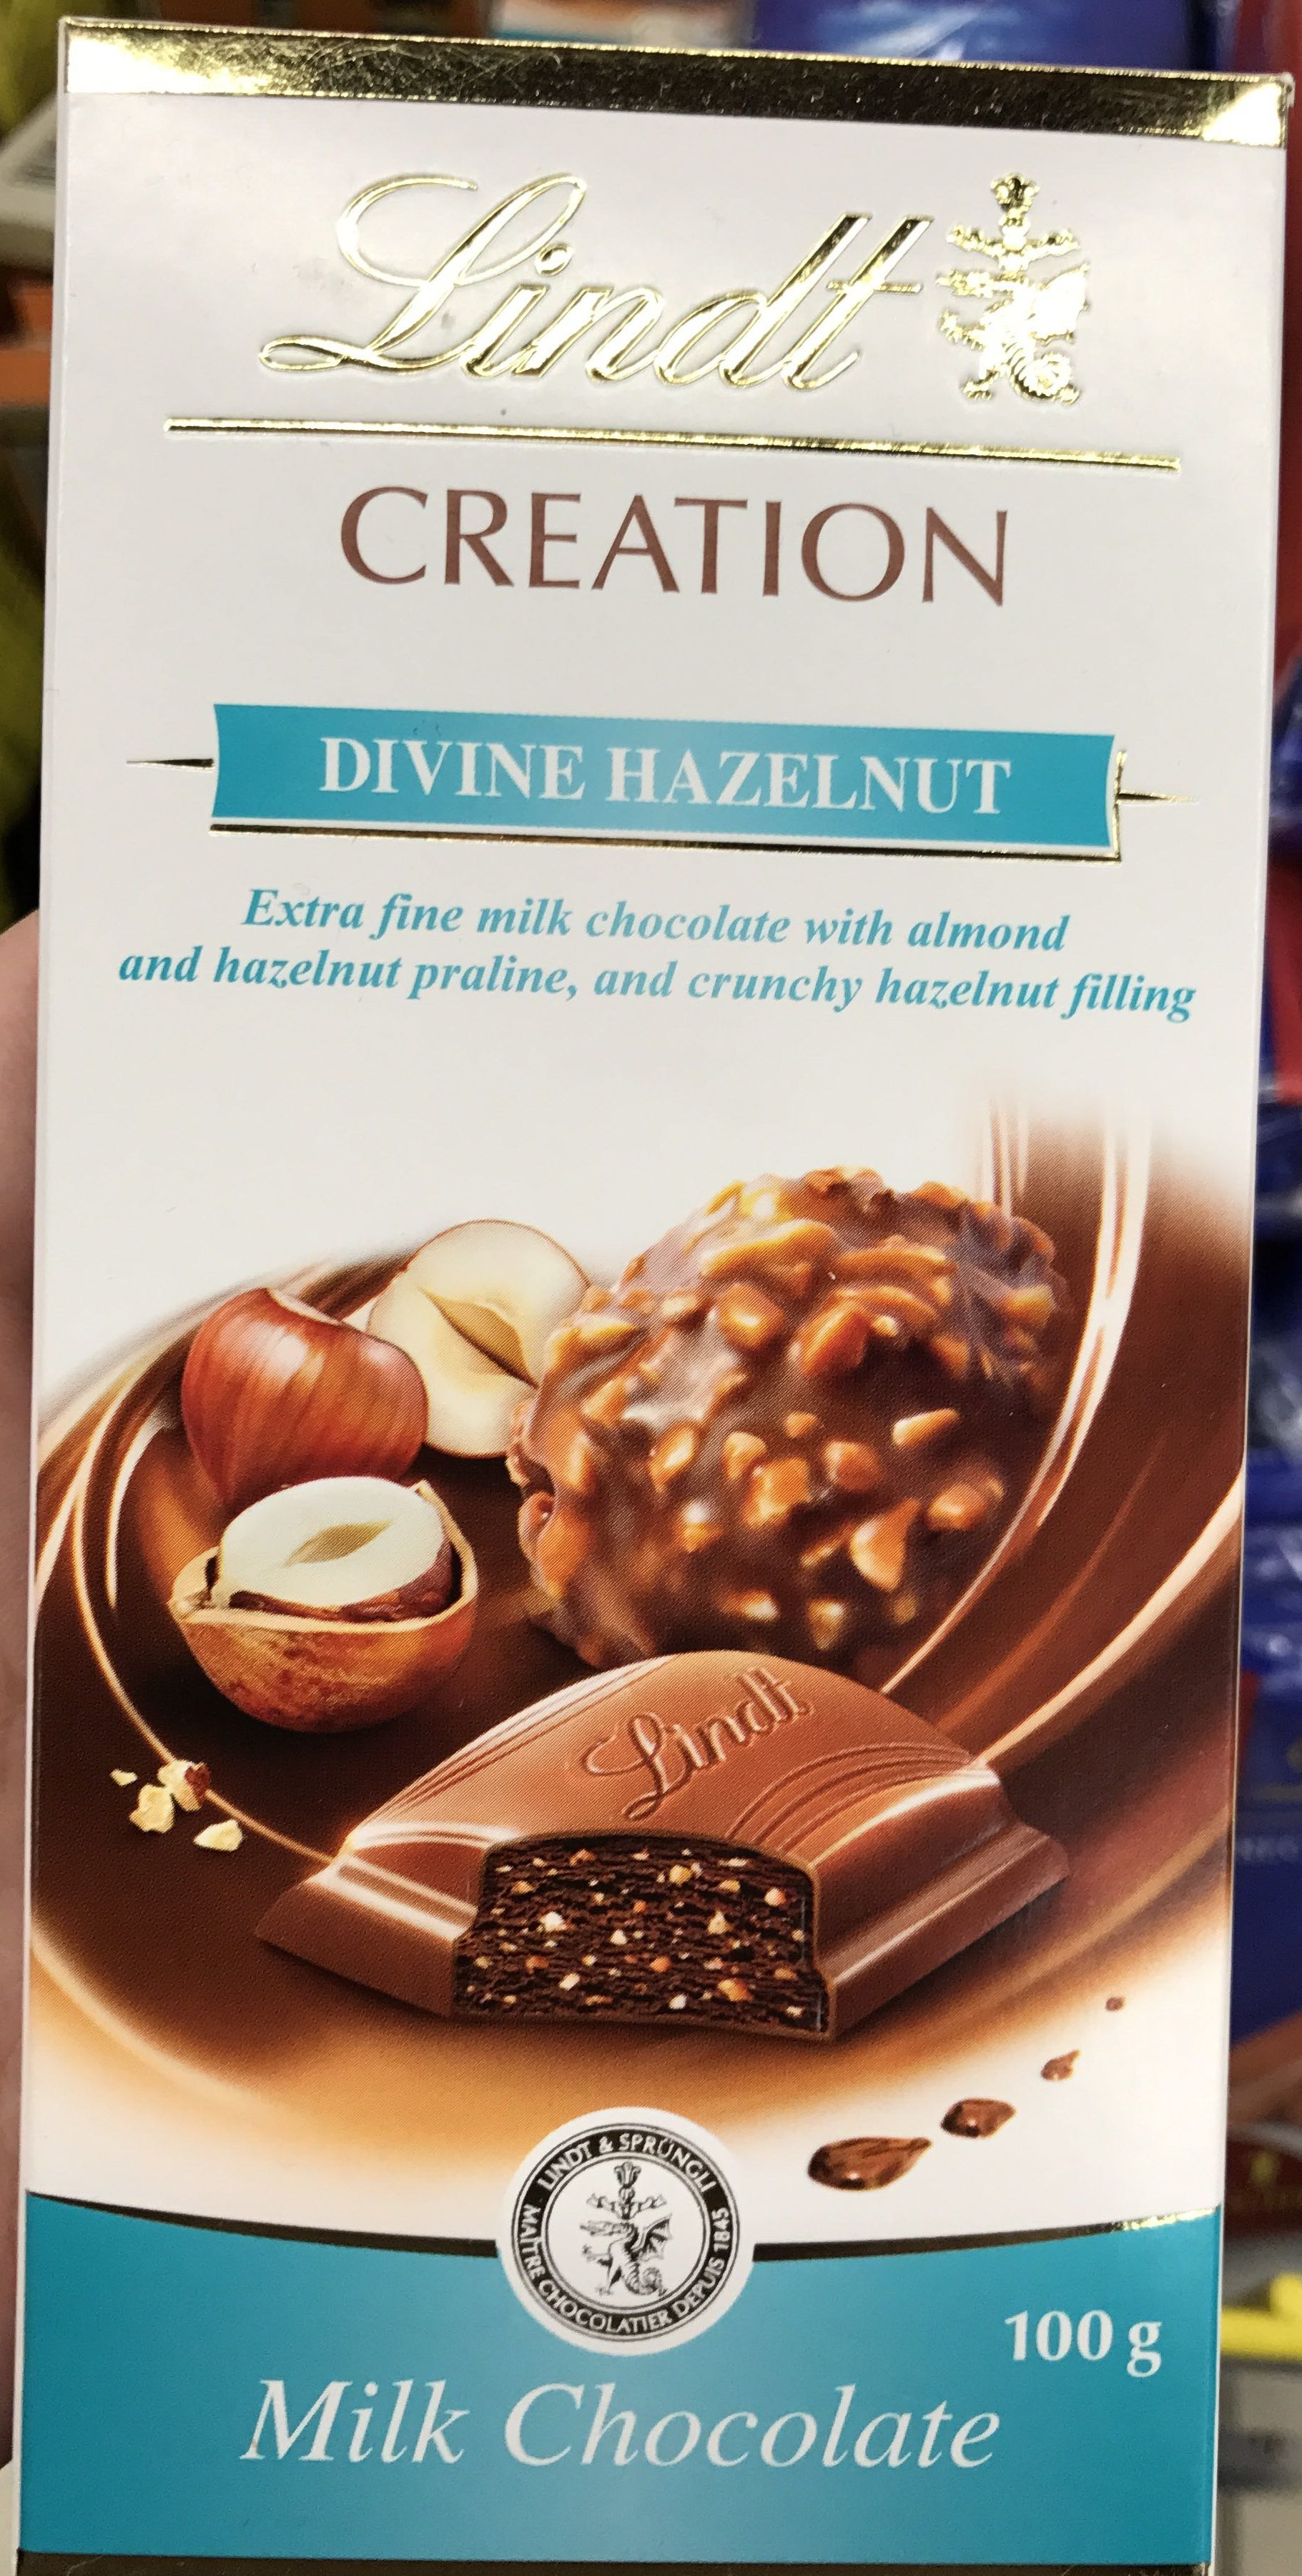 Creation Divine Hazelnut Milk Chocolate - Product